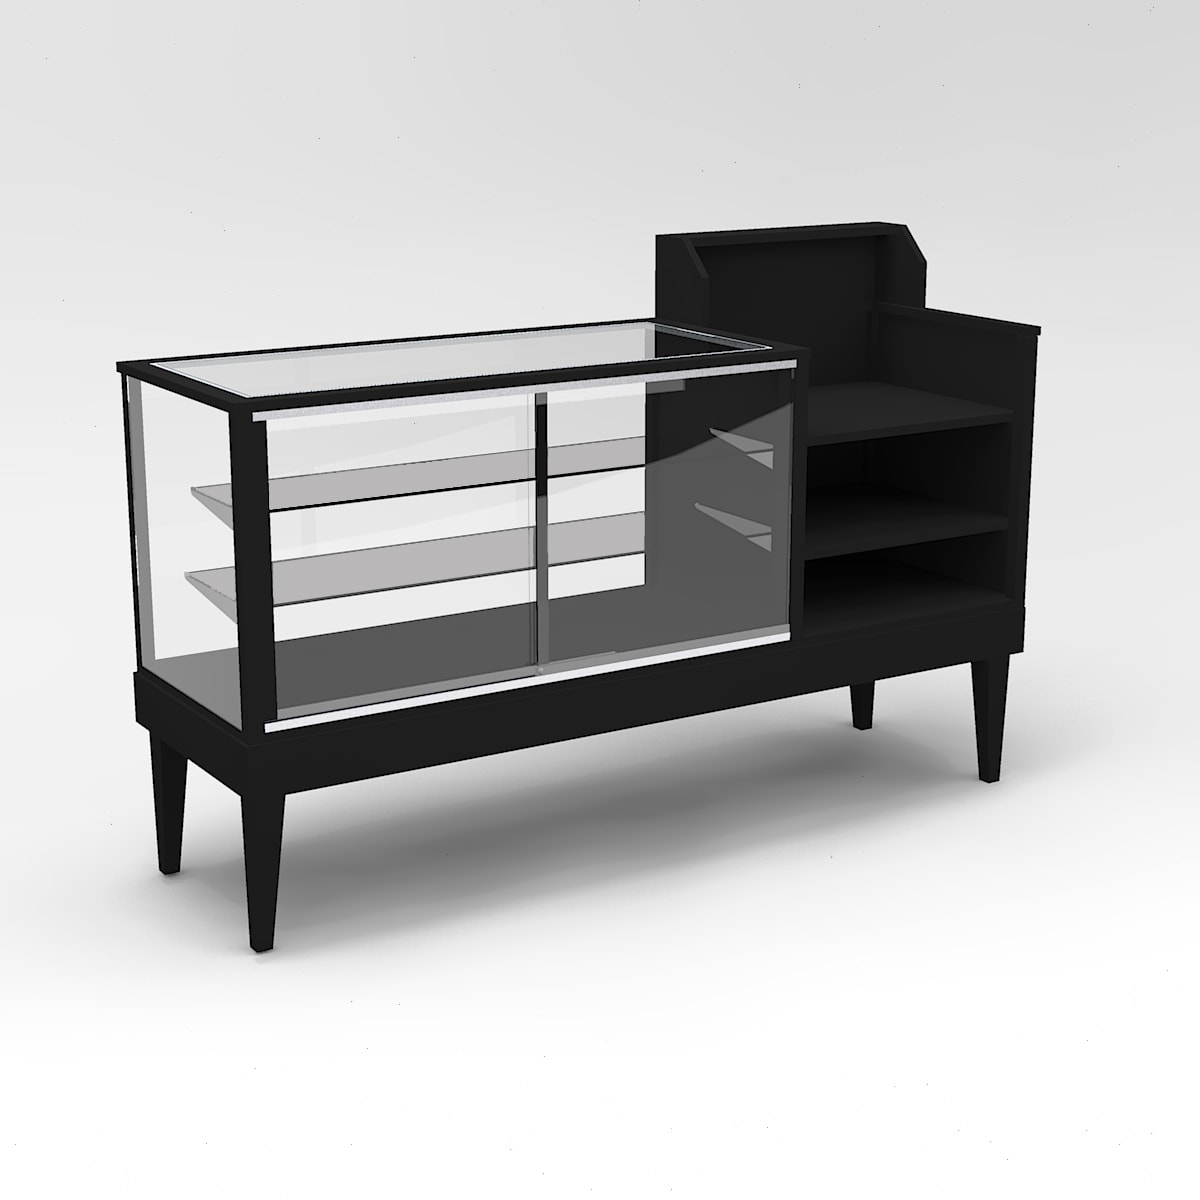 60 Inch Full Vision Tapered Leg Cash Wrap Display Case To Purchase